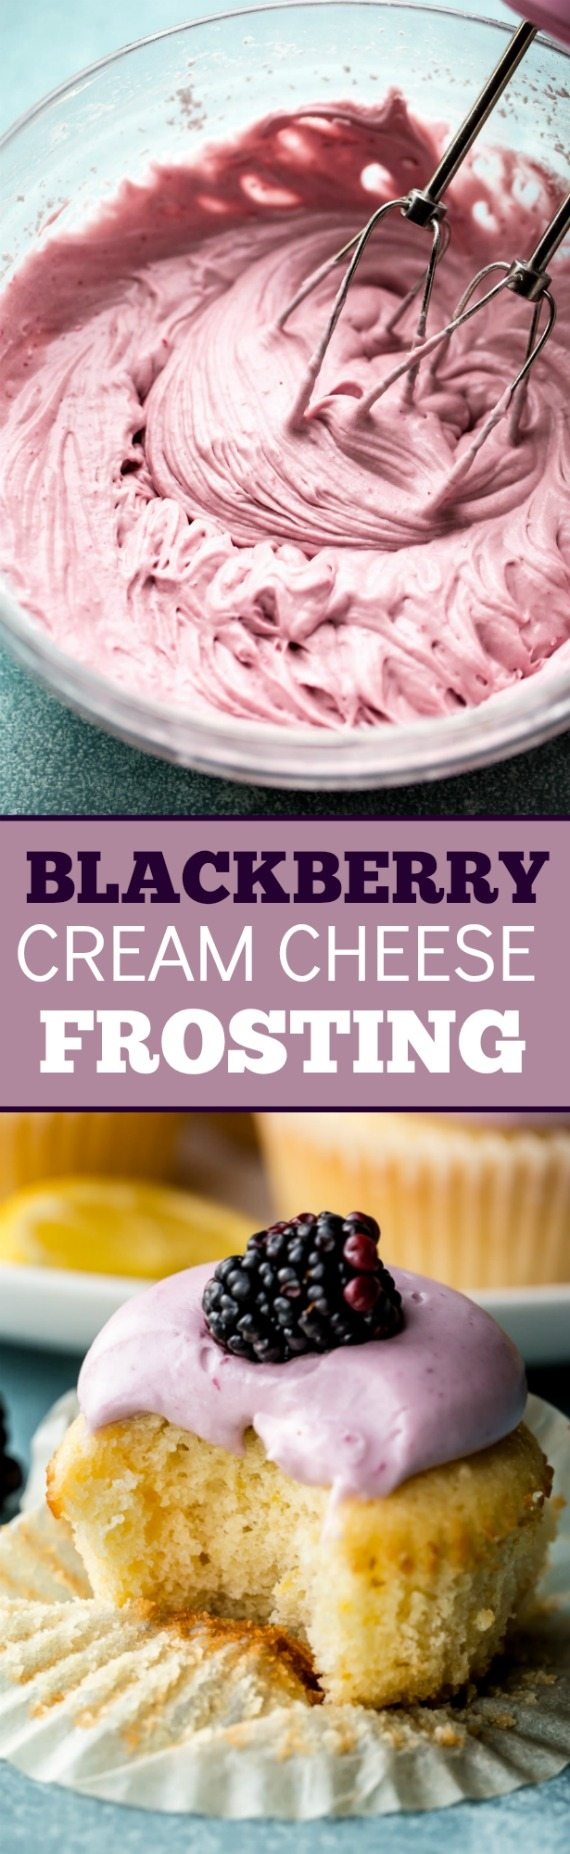 Creamy Silky And Smooth Blackberry Cream Cheese Frosting Made From Blackberry Puree The